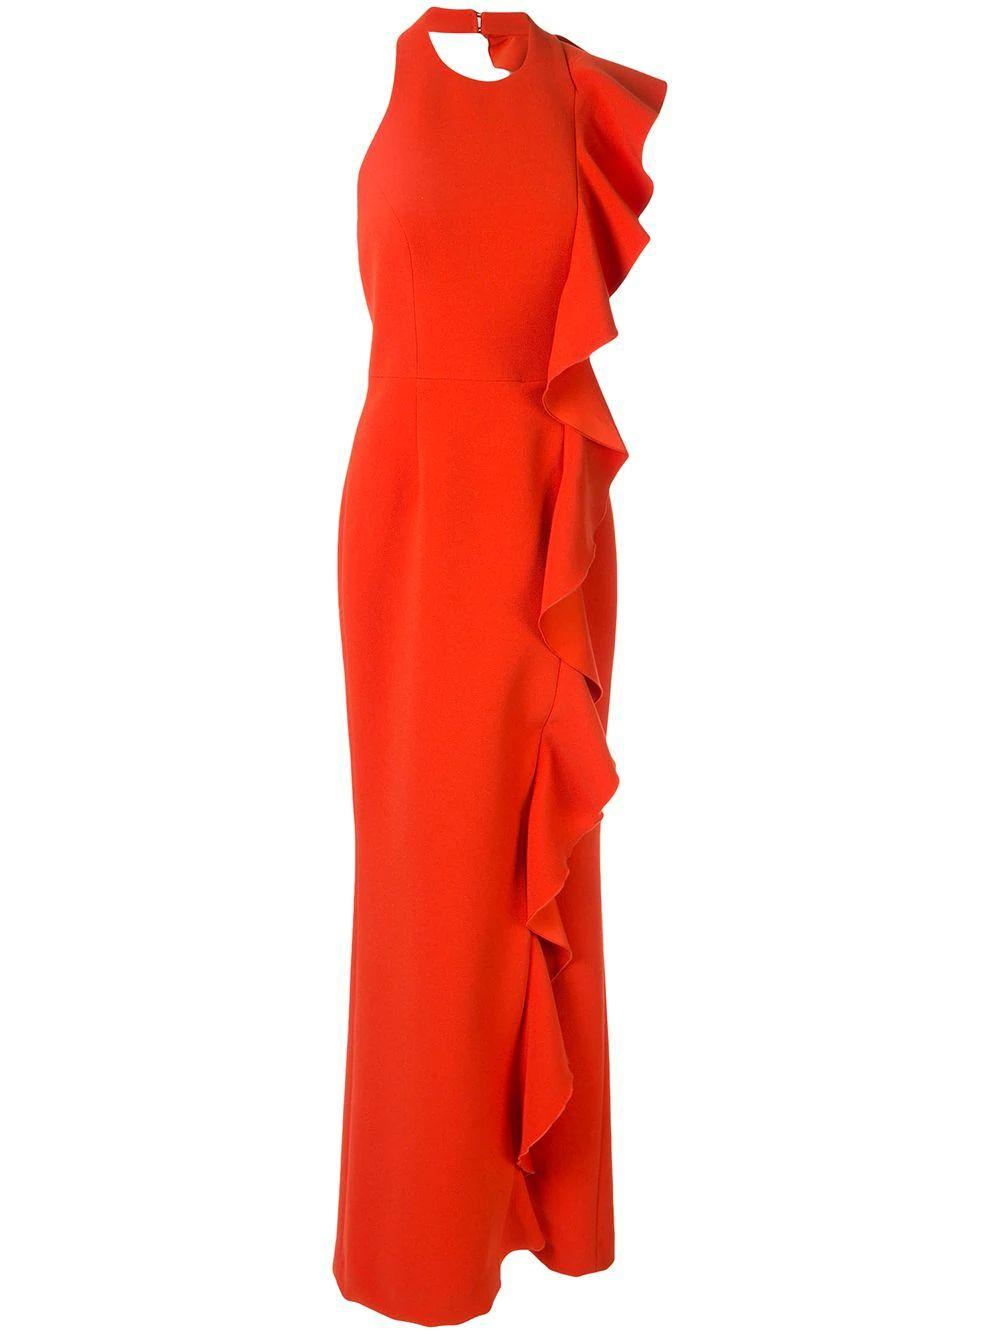 Galerie Side Ruffle Gown Item # 1904-1562